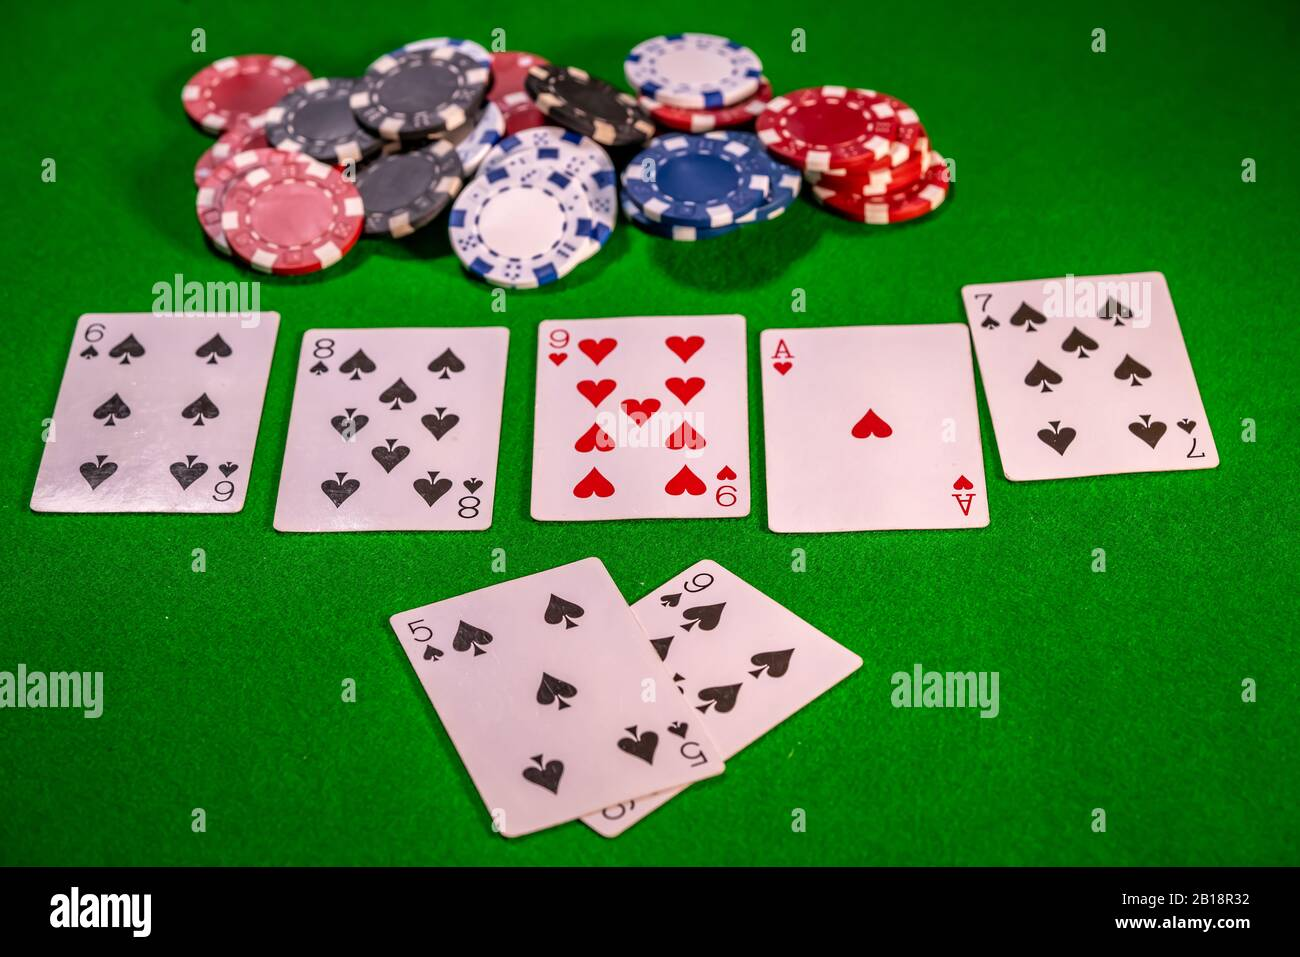 What is a flush in poker texas holdem games